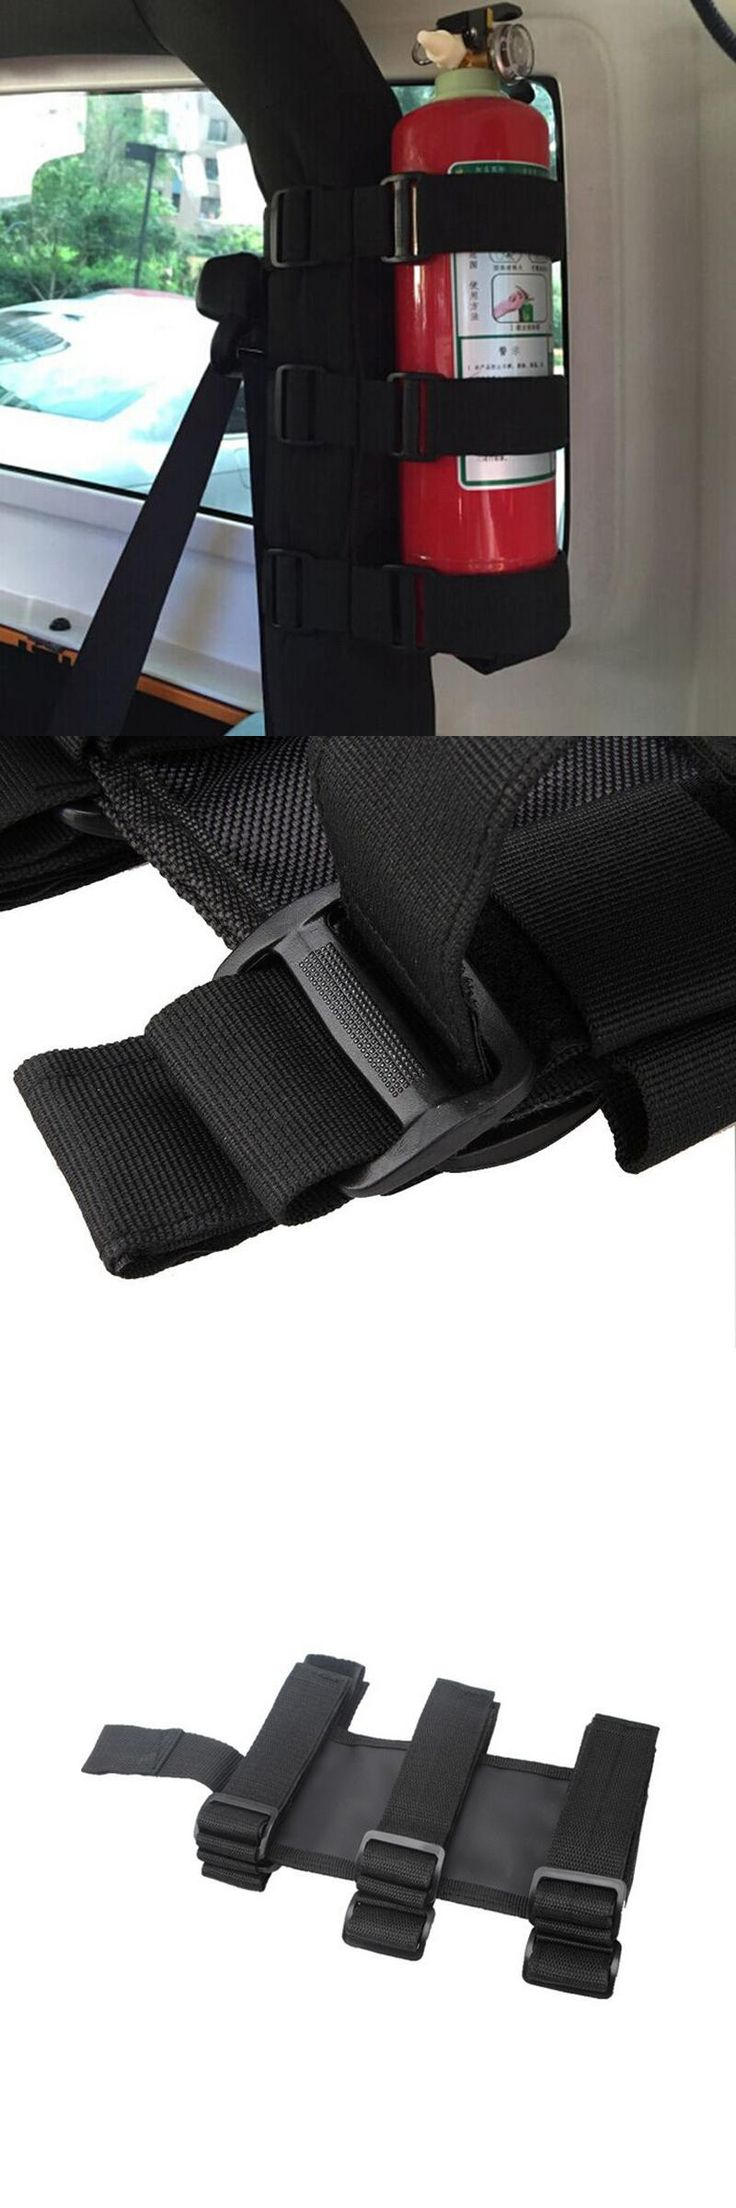 [Visit to Buy] Black Roll Bar Fire Extinguisher Holder Car Styling For Jeep Wrangler TJ YJ JK CJ 2016 New Arrival Nylon Straps Free Shipping #Advertisement